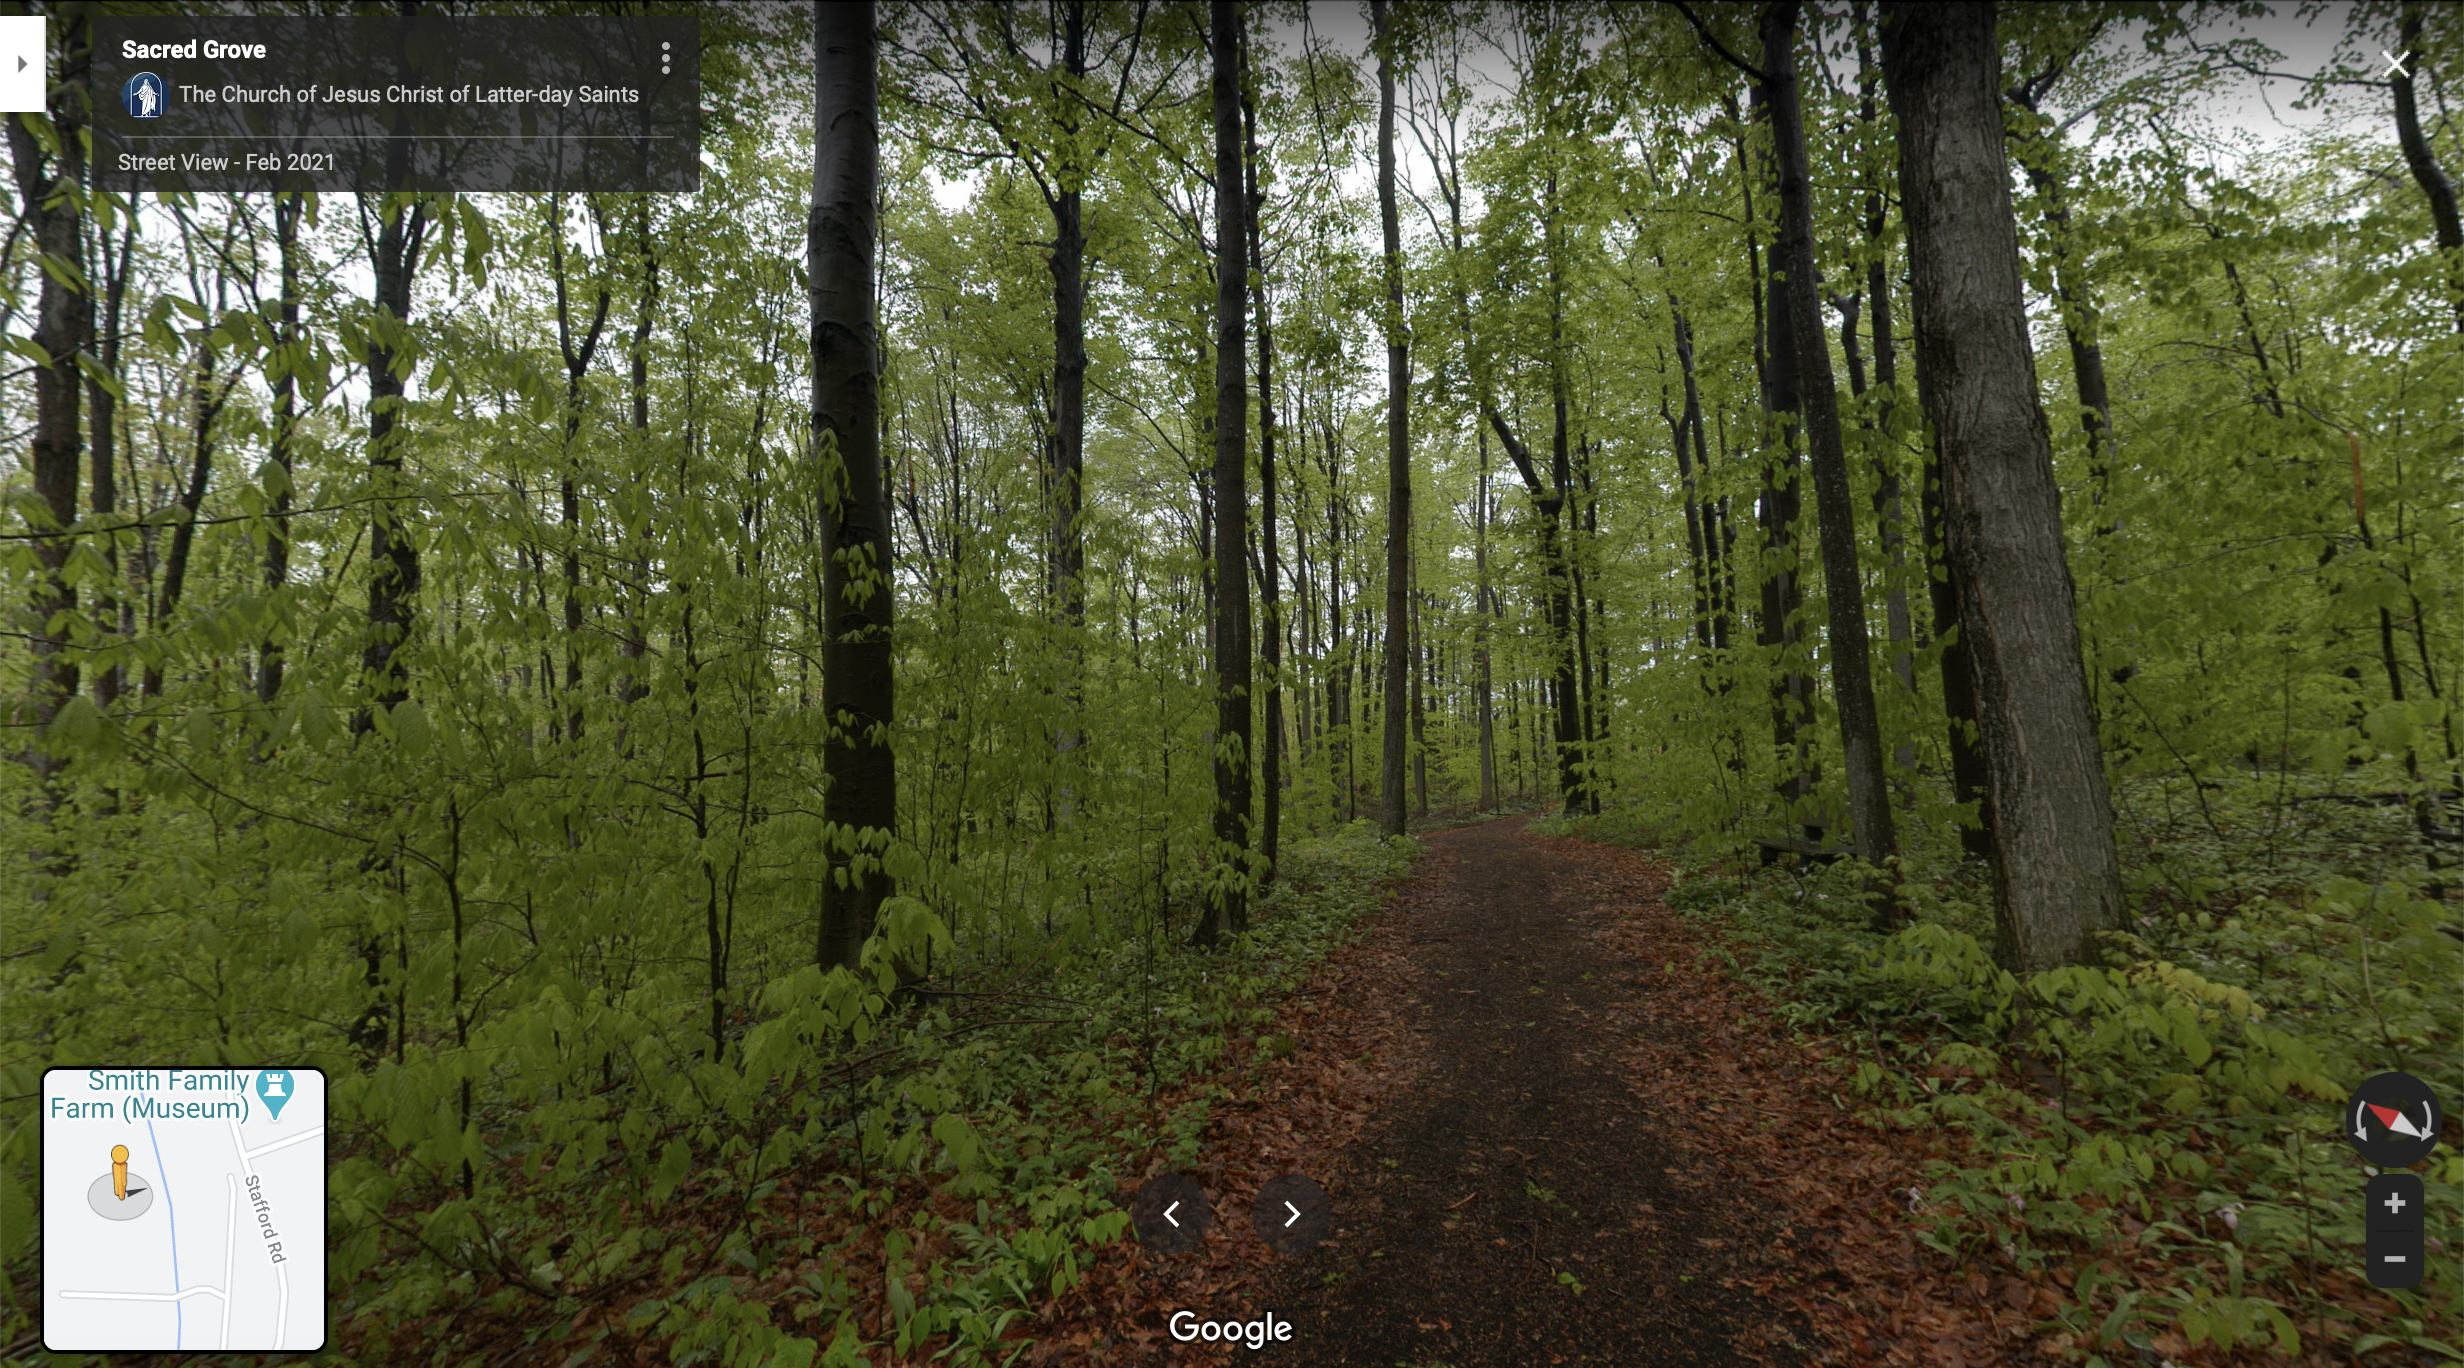 Screenshot of the Google Maps 360 view of the Sacred Grove